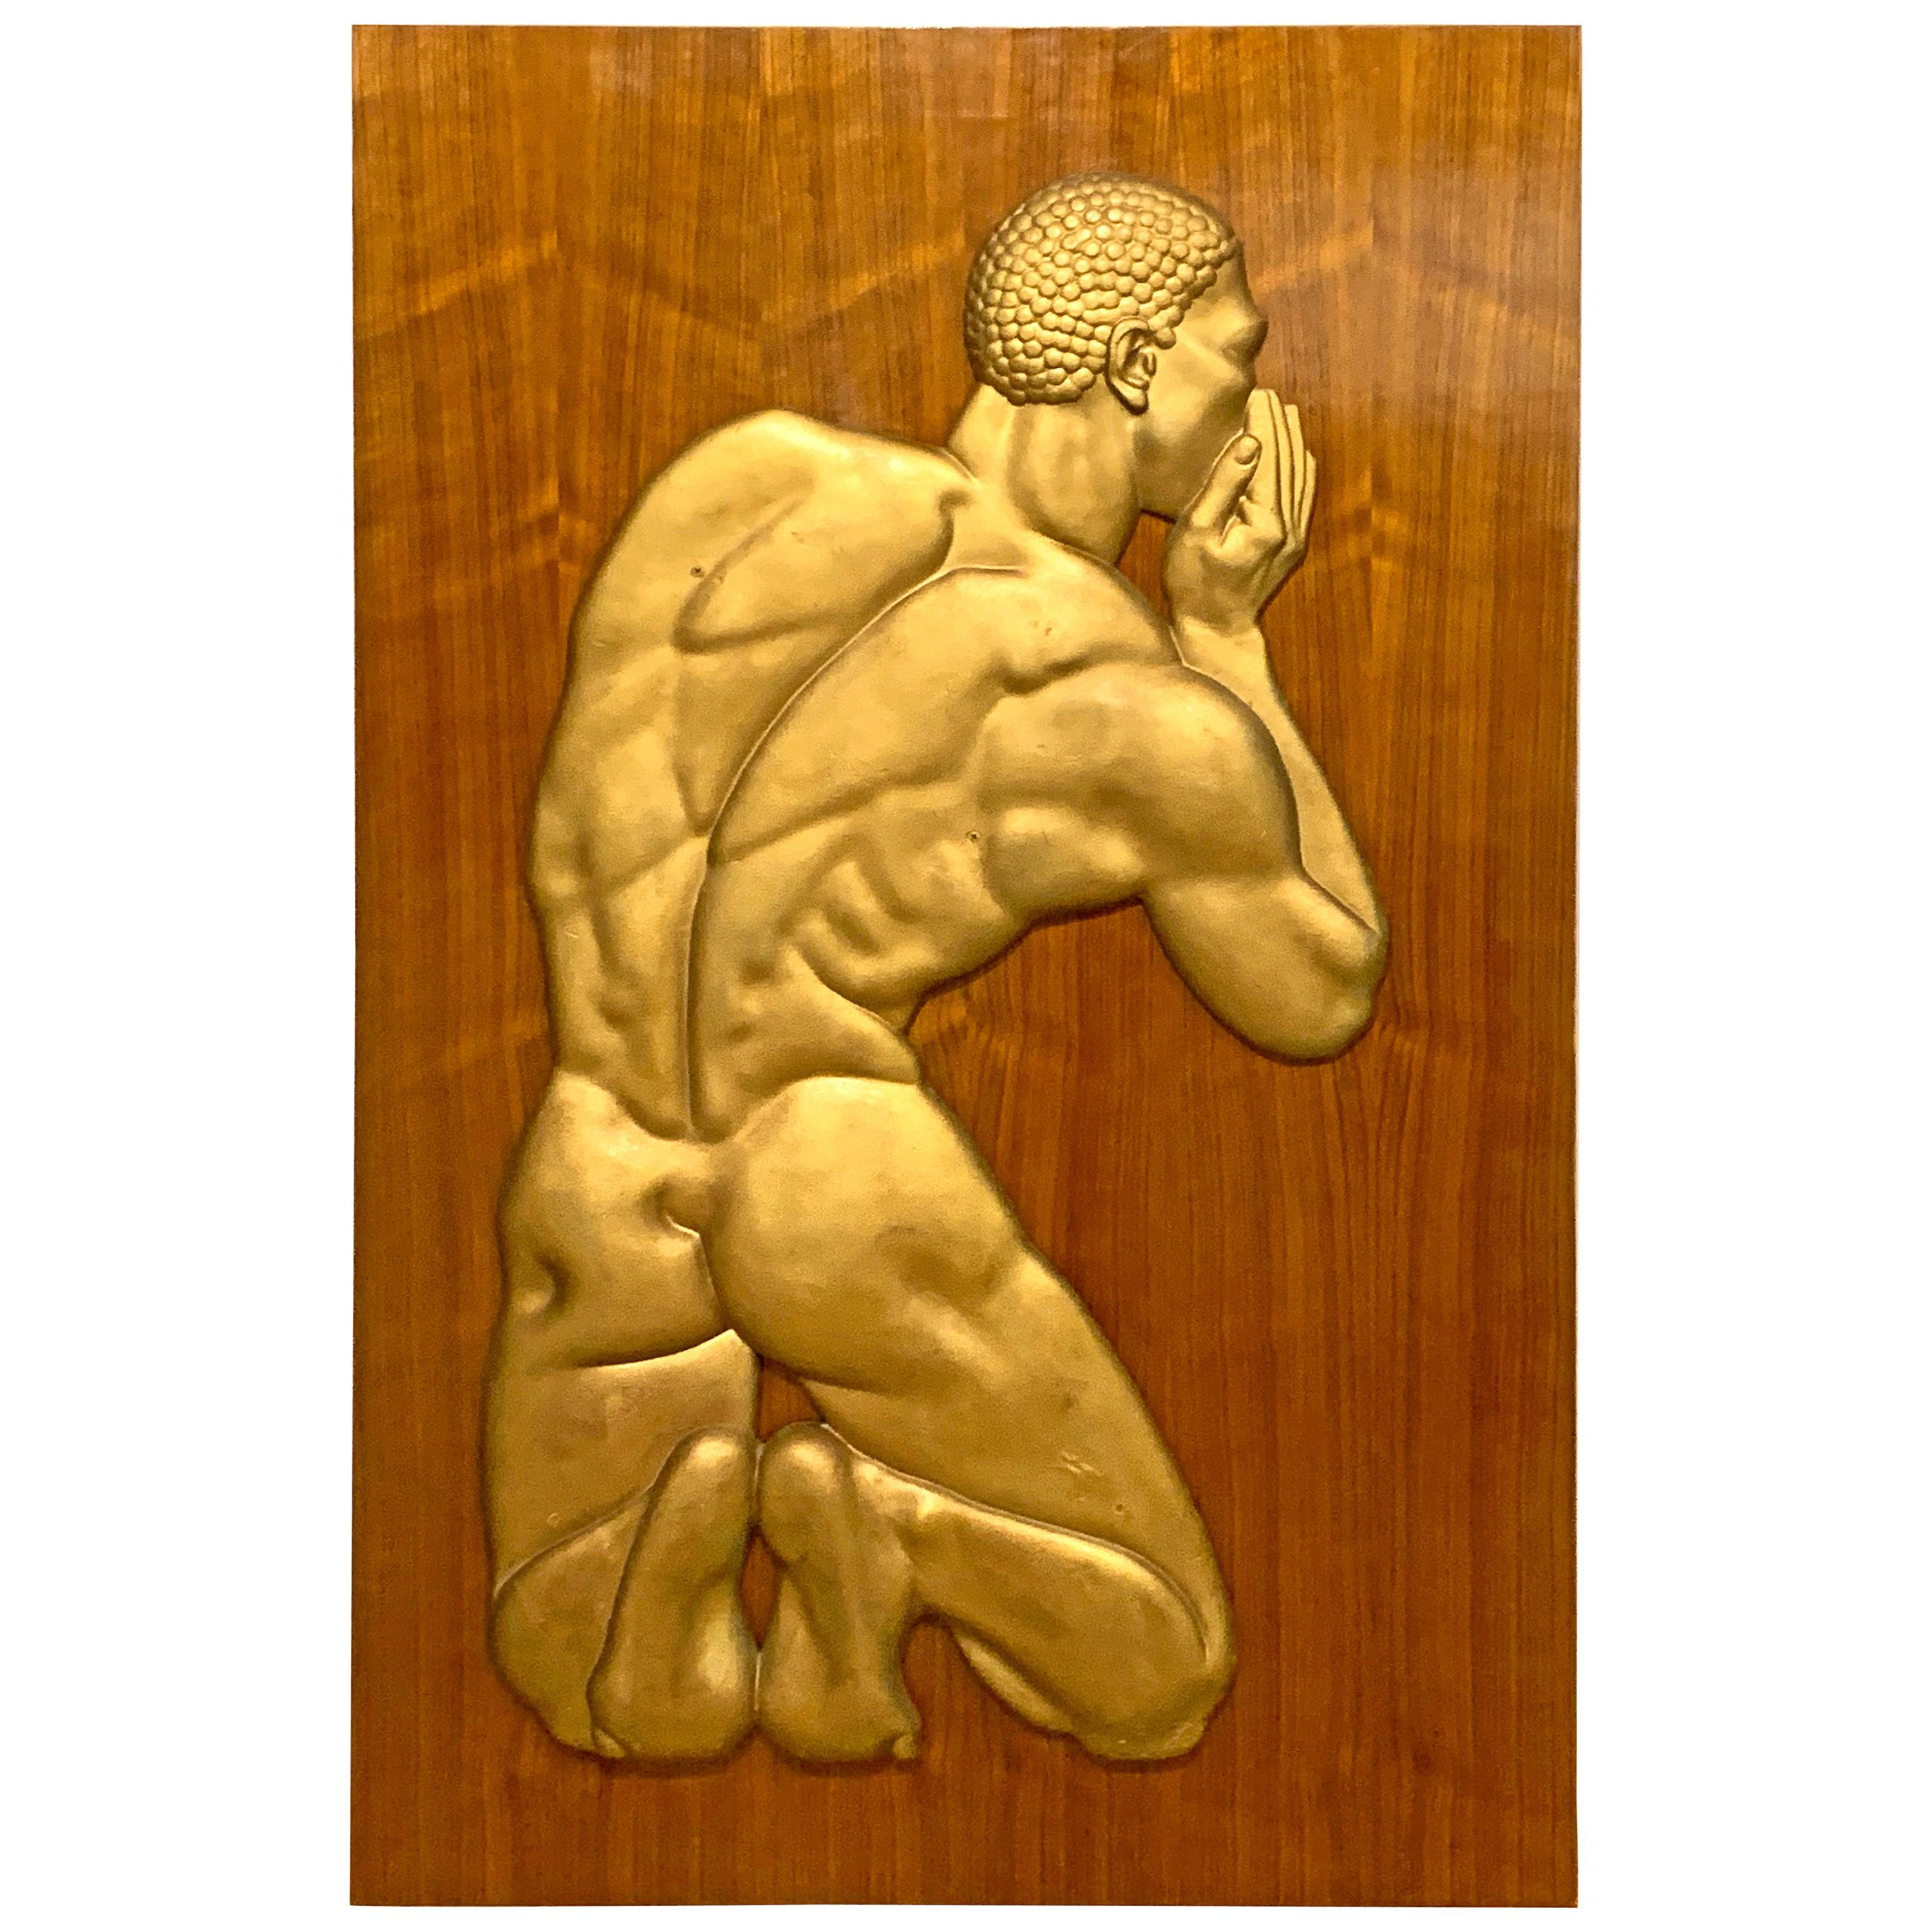 """""""The Whisperer,"""" Striking Art Deco Nude Black Male Sculptural Relief"""